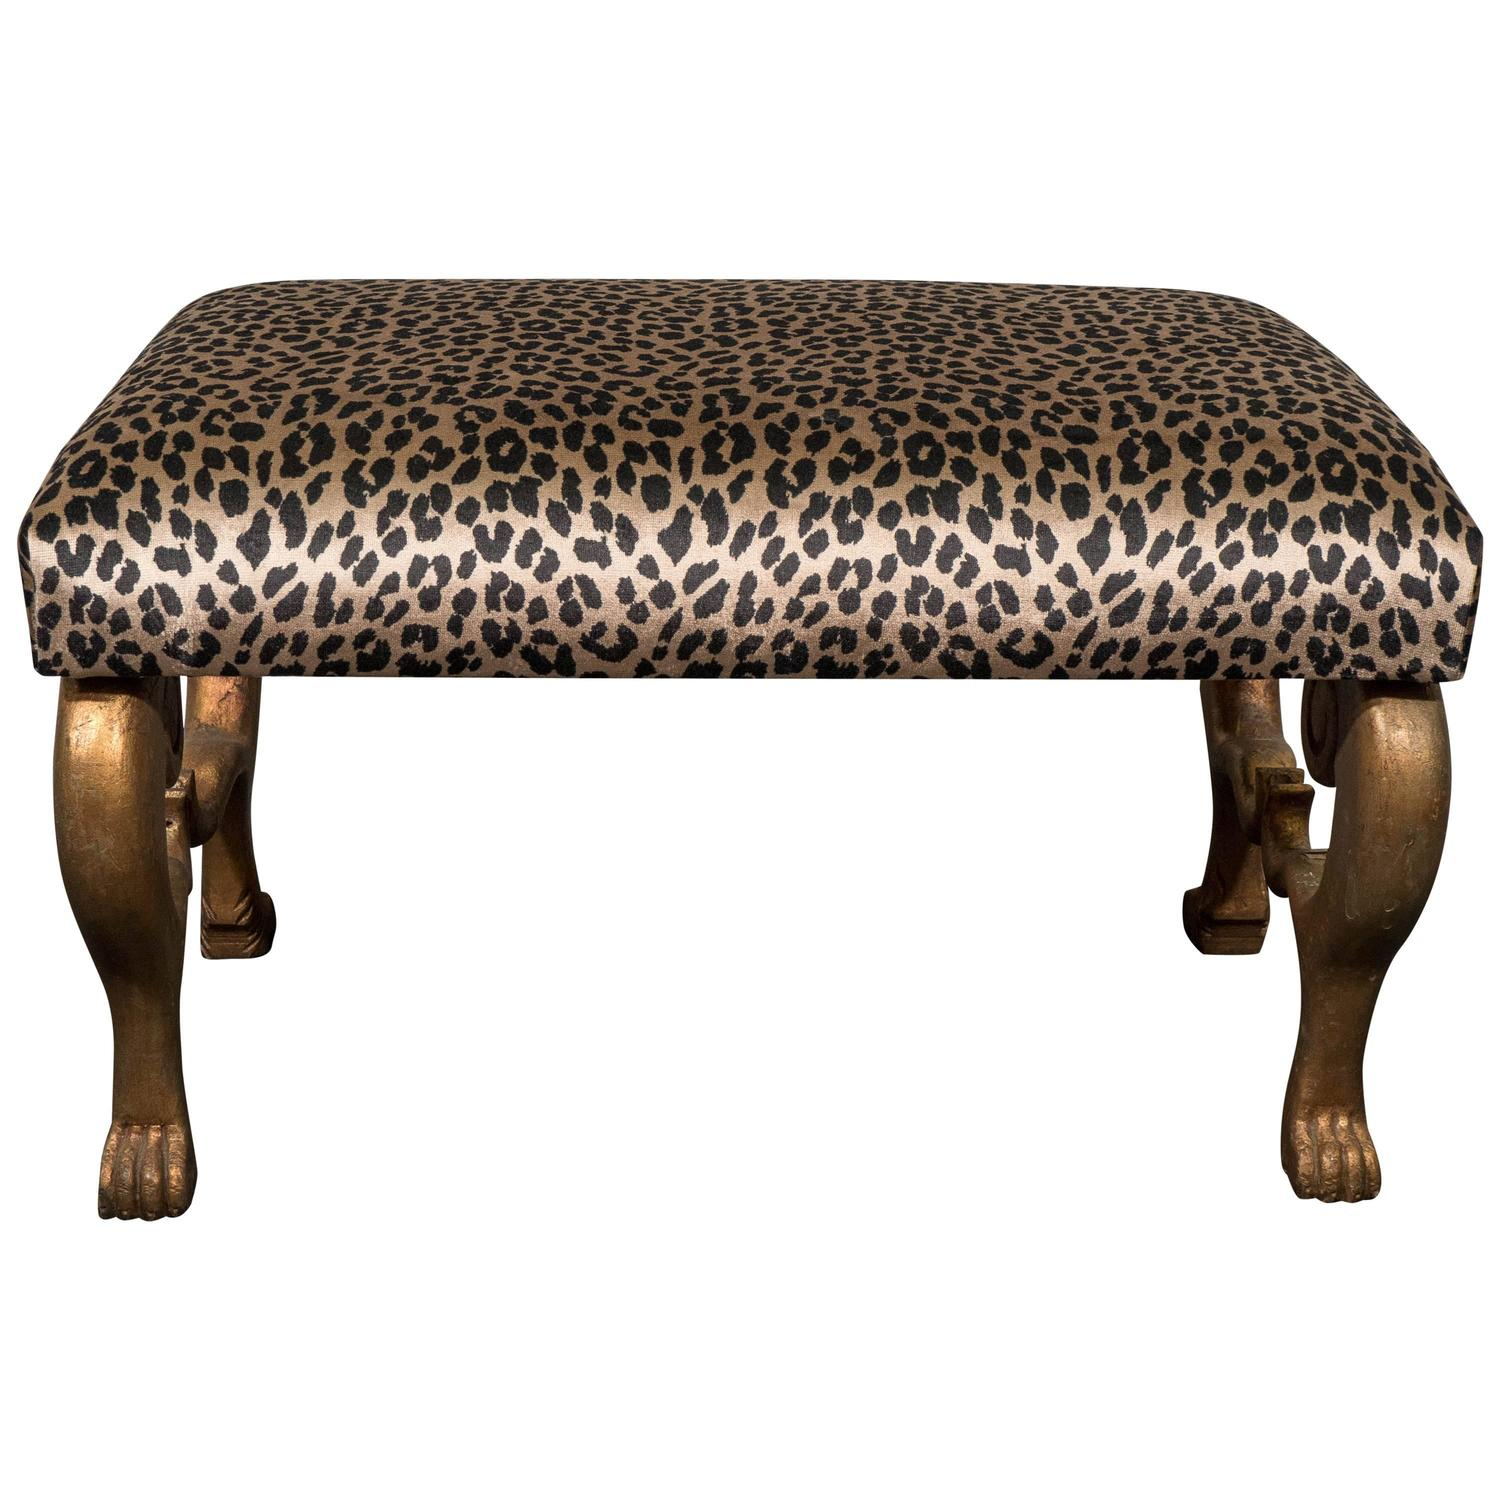 Midcentury gilt carved egyptian bench with leopard print Leopard print bench